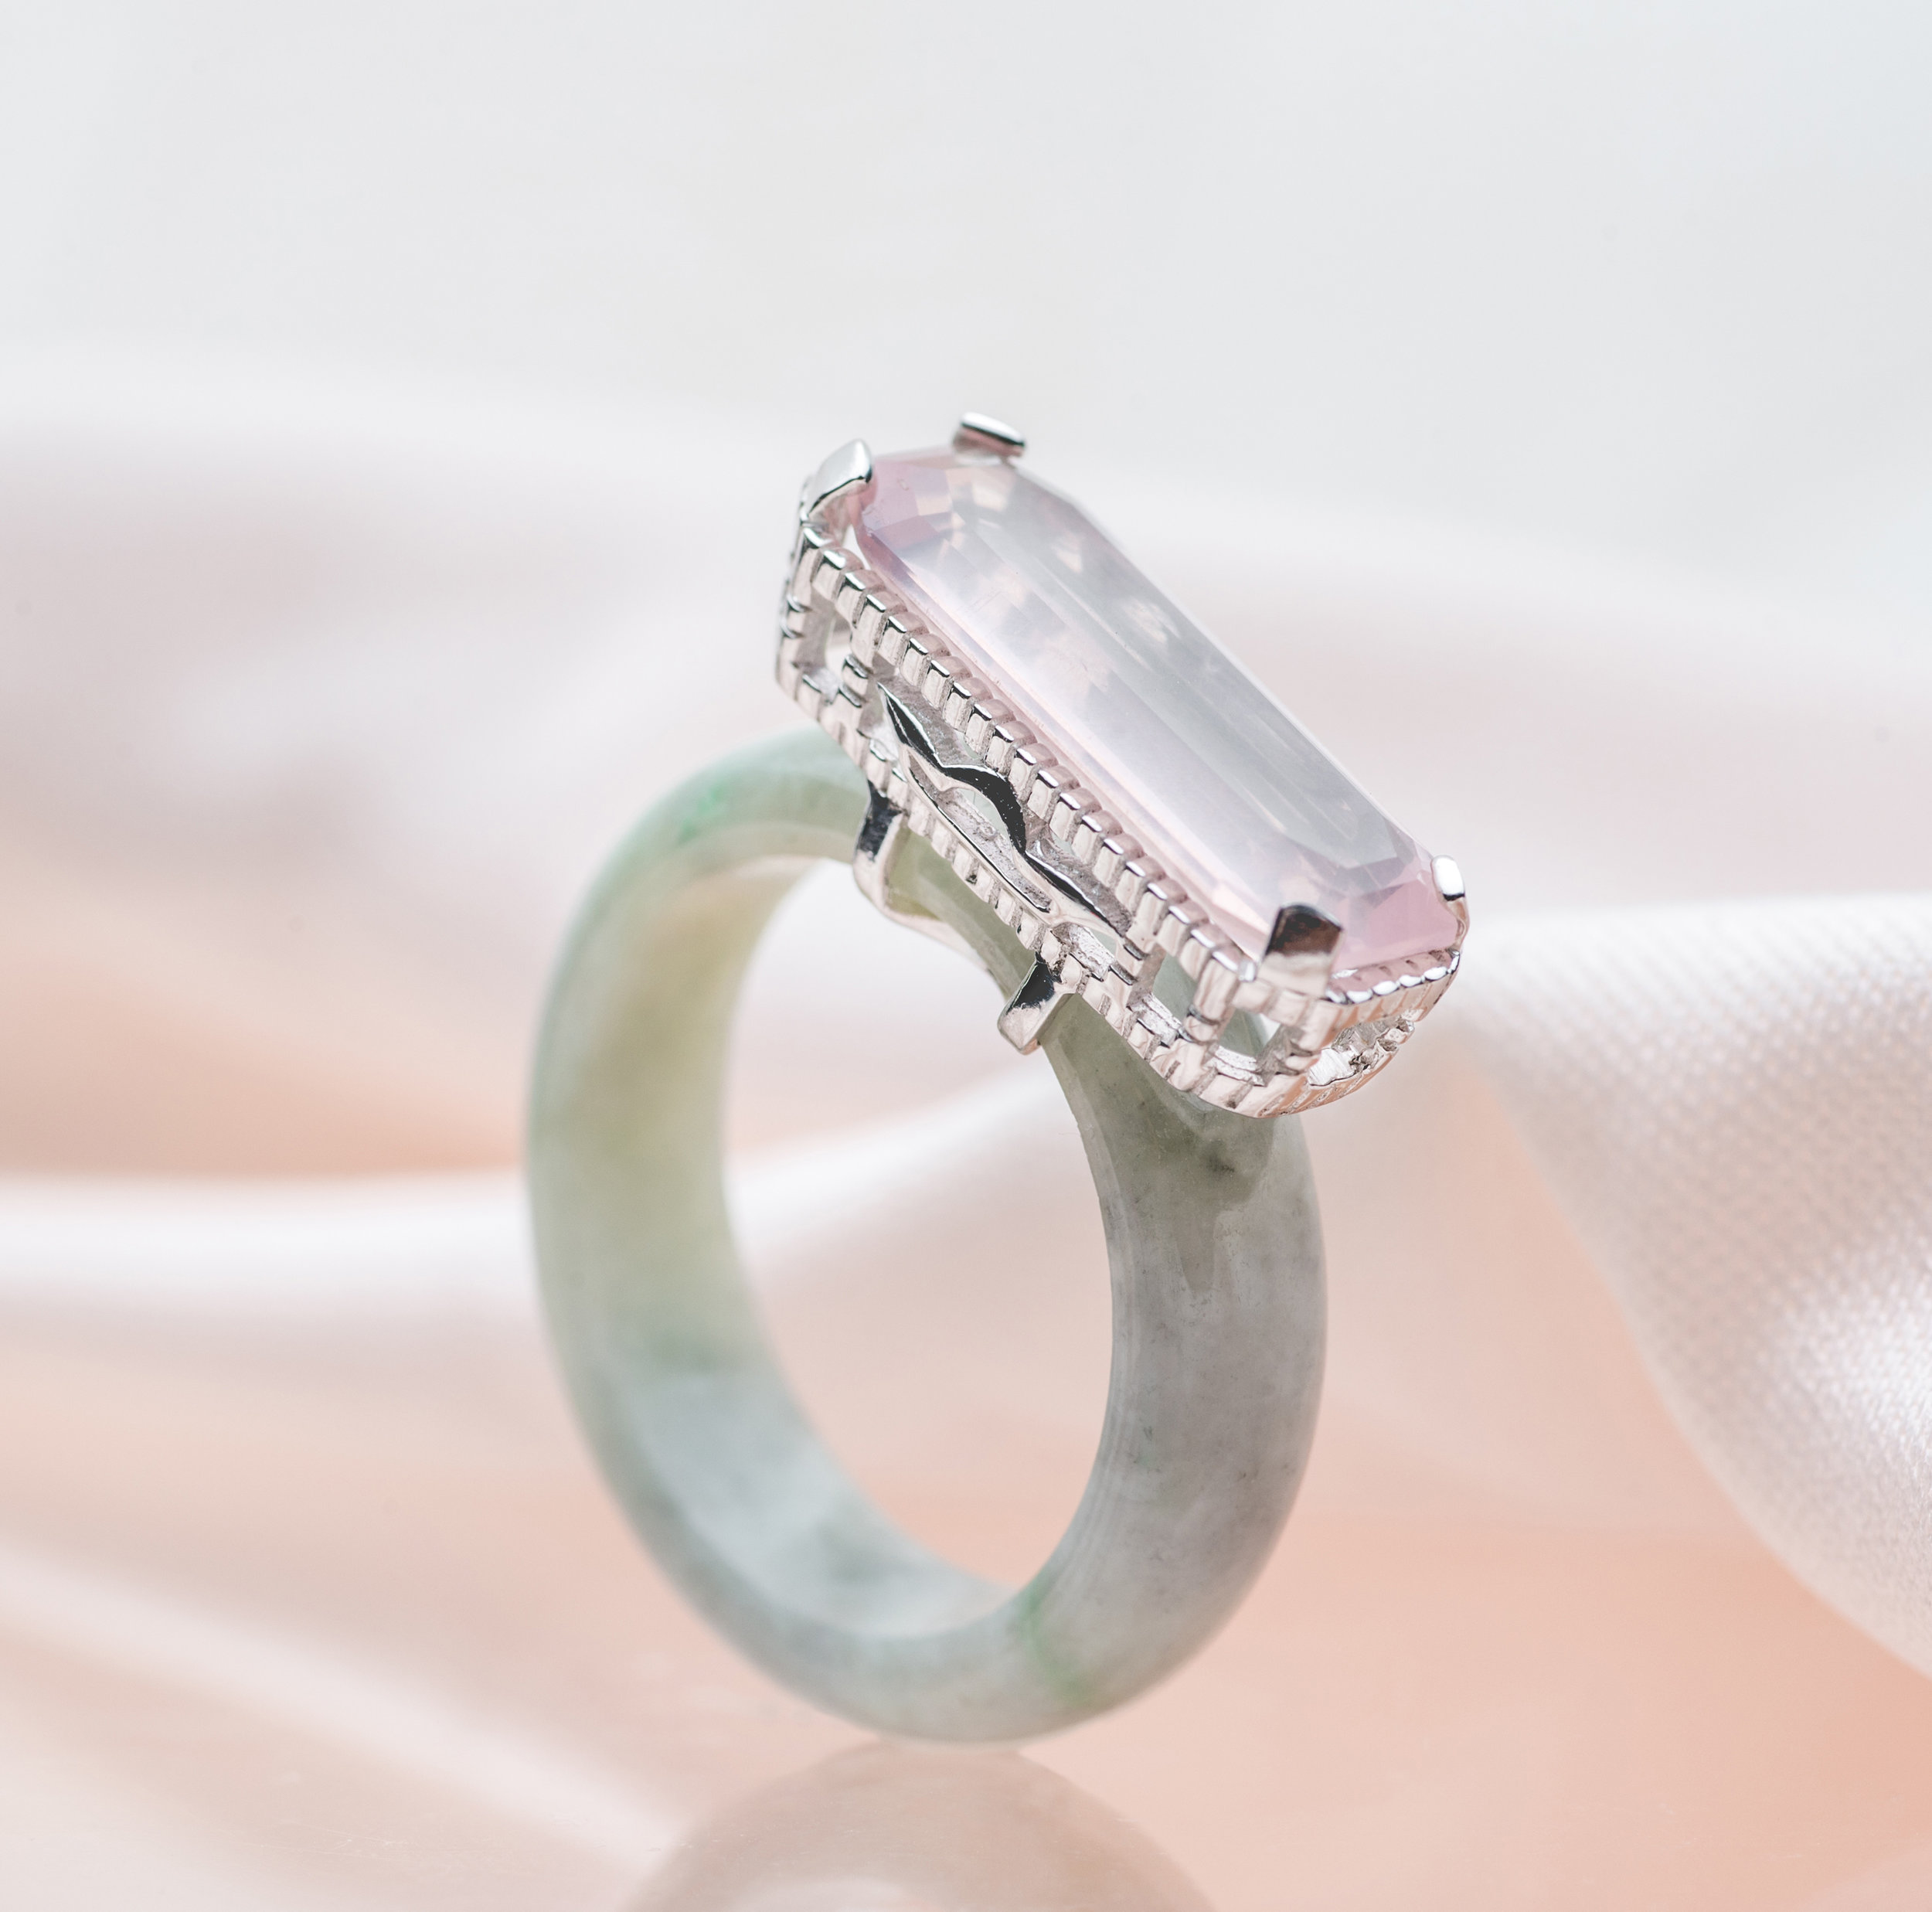 Rose Quartz: For Harmony - Complete with its gentle pale pink hues, it's no wonder why the Rose Quartz has acquired the moniker,